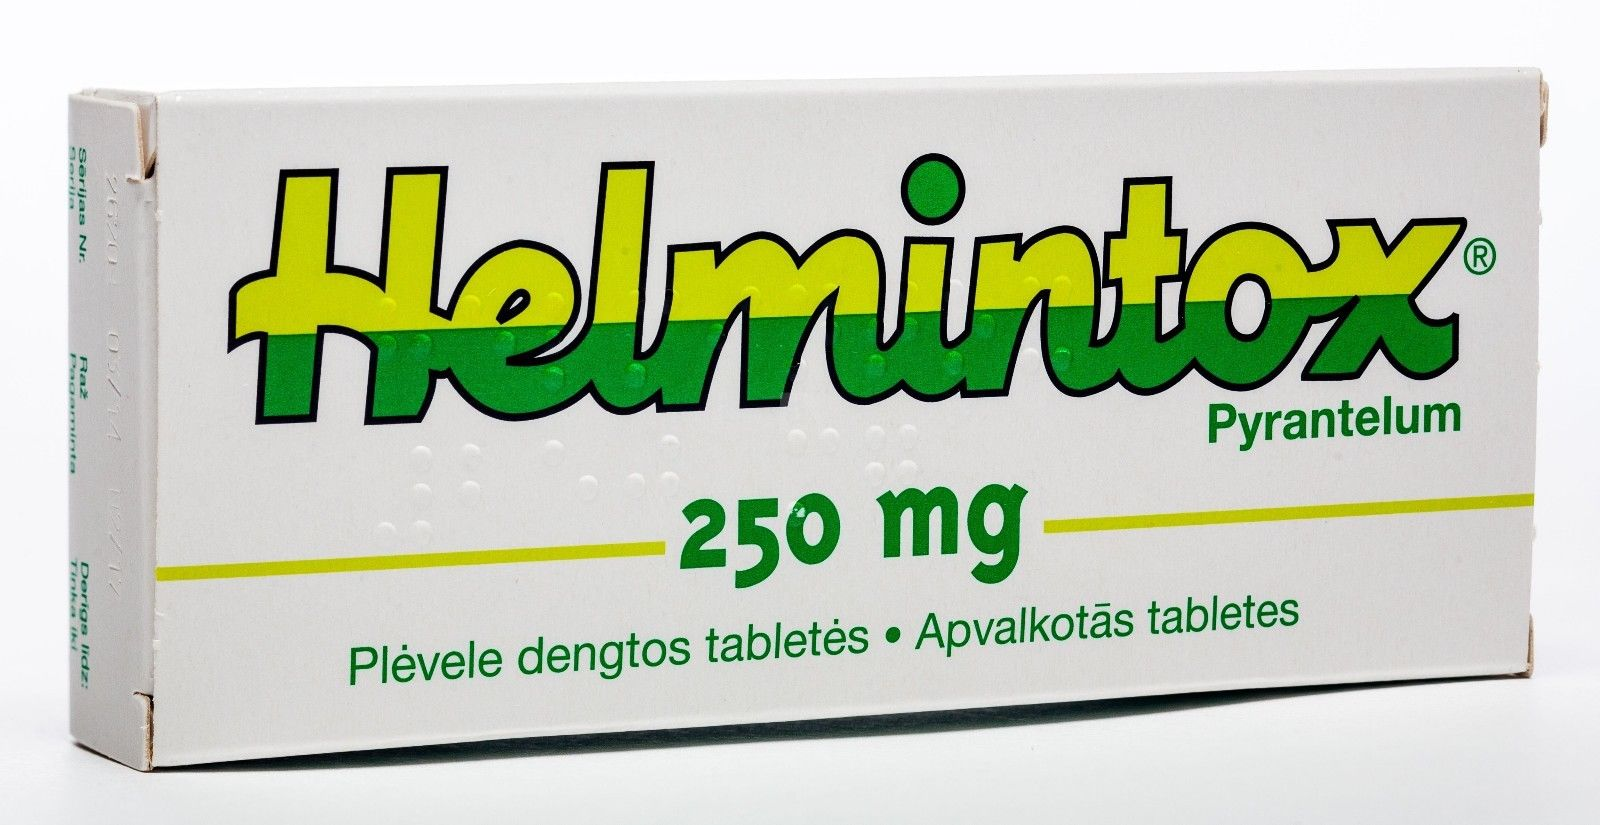 helmintox used for intraductal papilloma discharge color